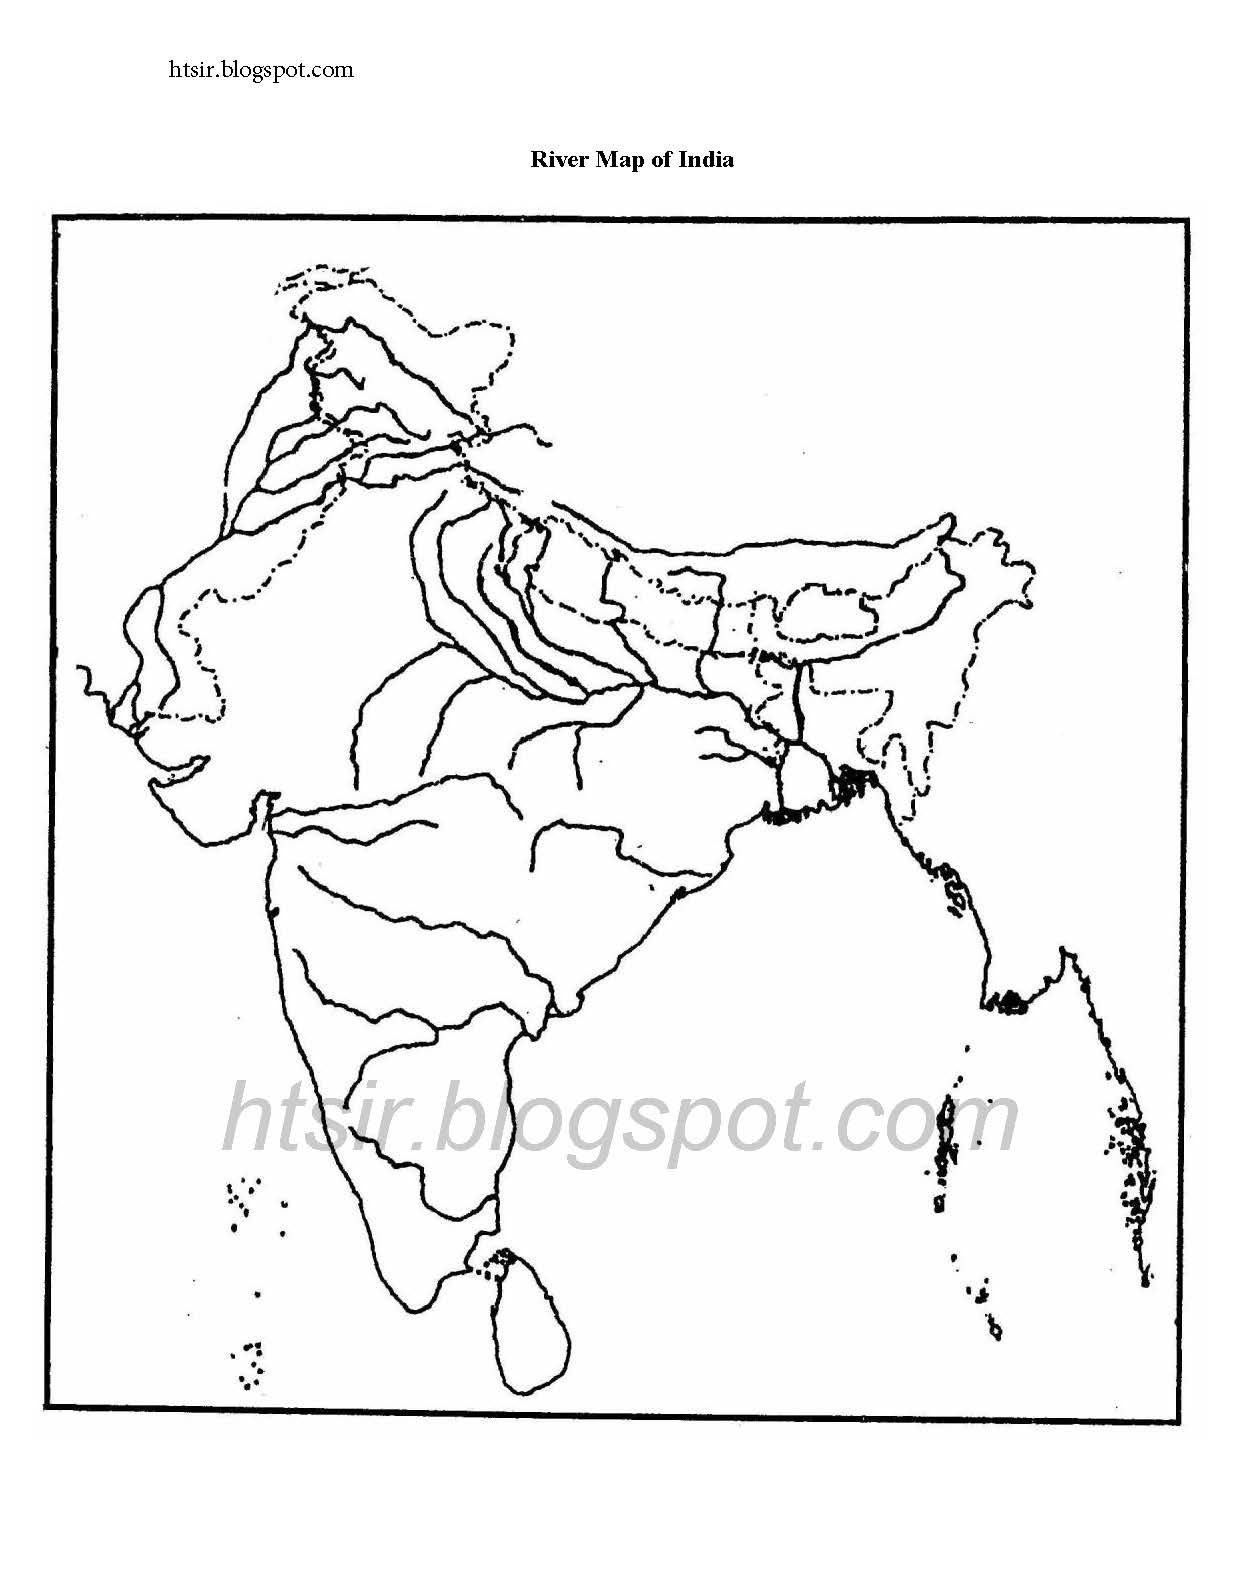 Blank Map Of India With Rivers